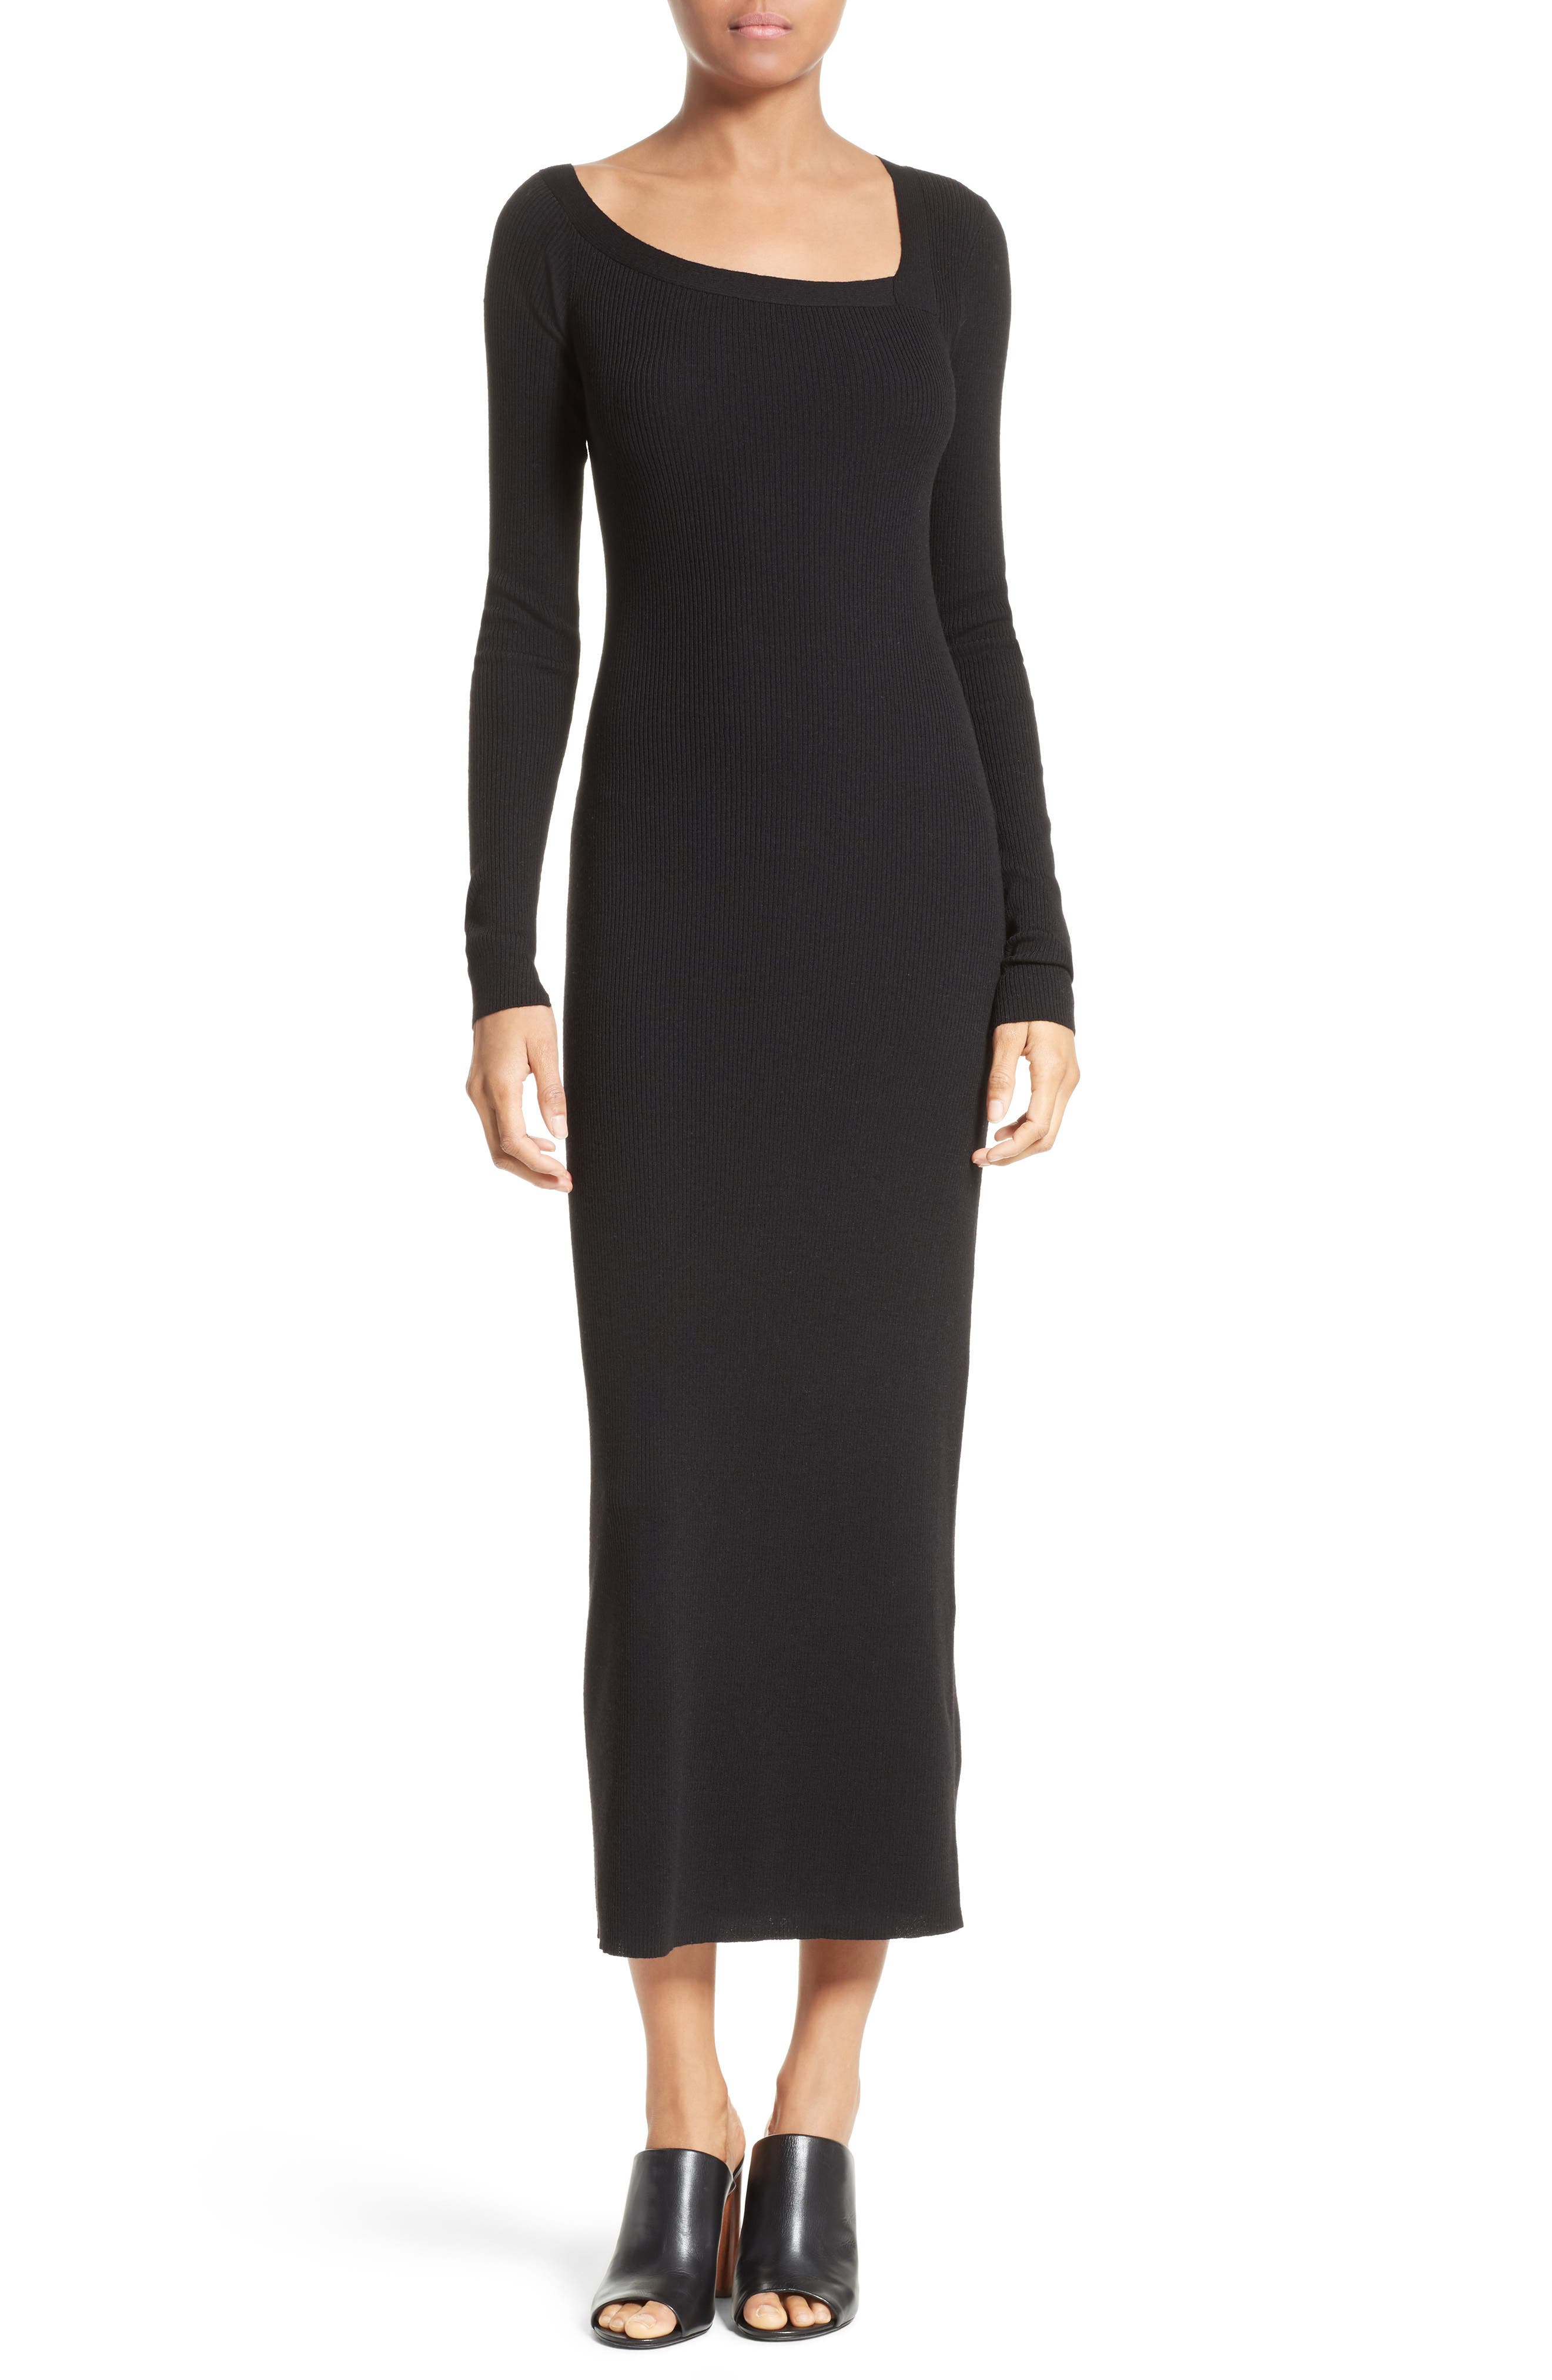 Brynn Merino Wool Blend Midi Dress,                             Main thumbnail 1, color,                             001